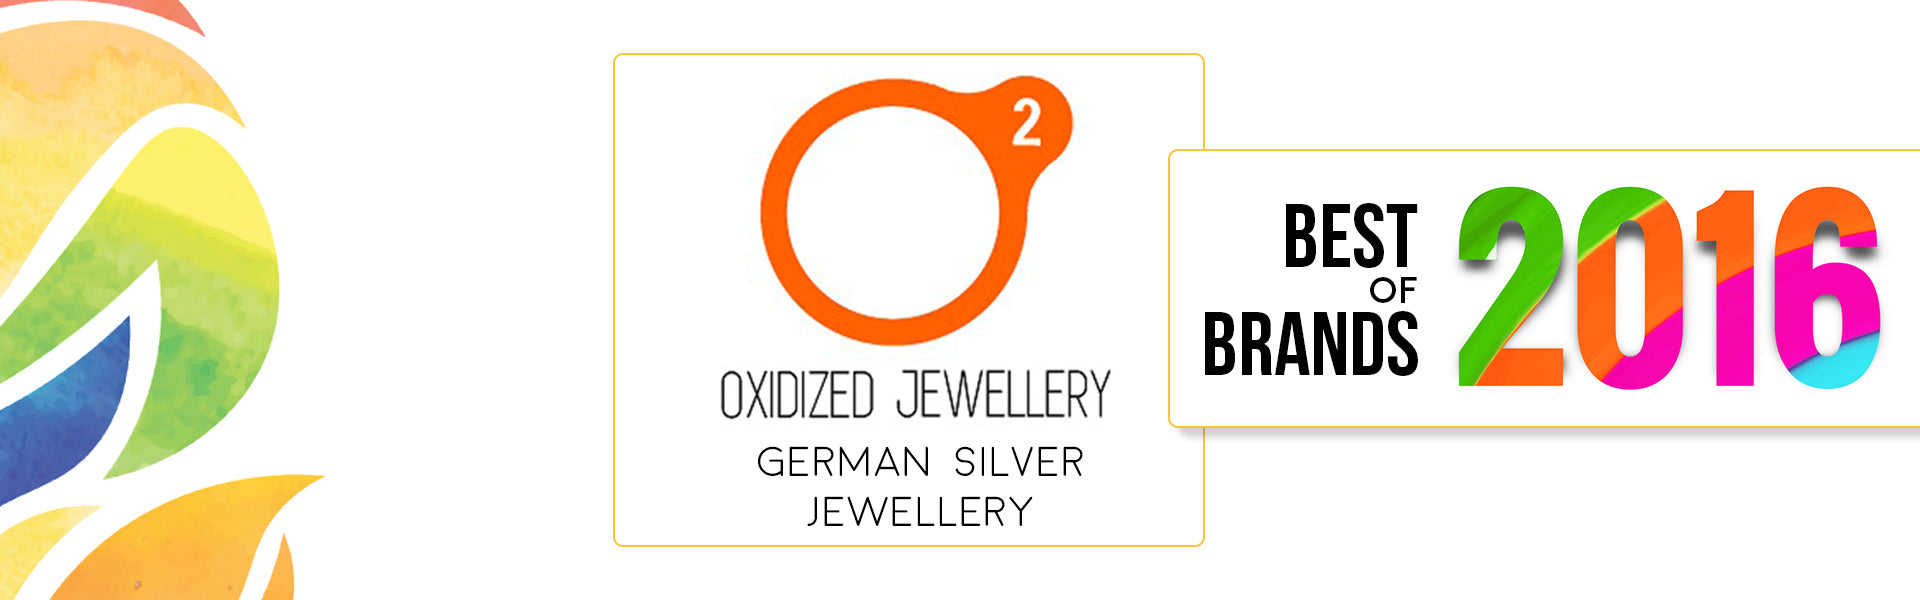 Best Brands of the Year | Oxidized